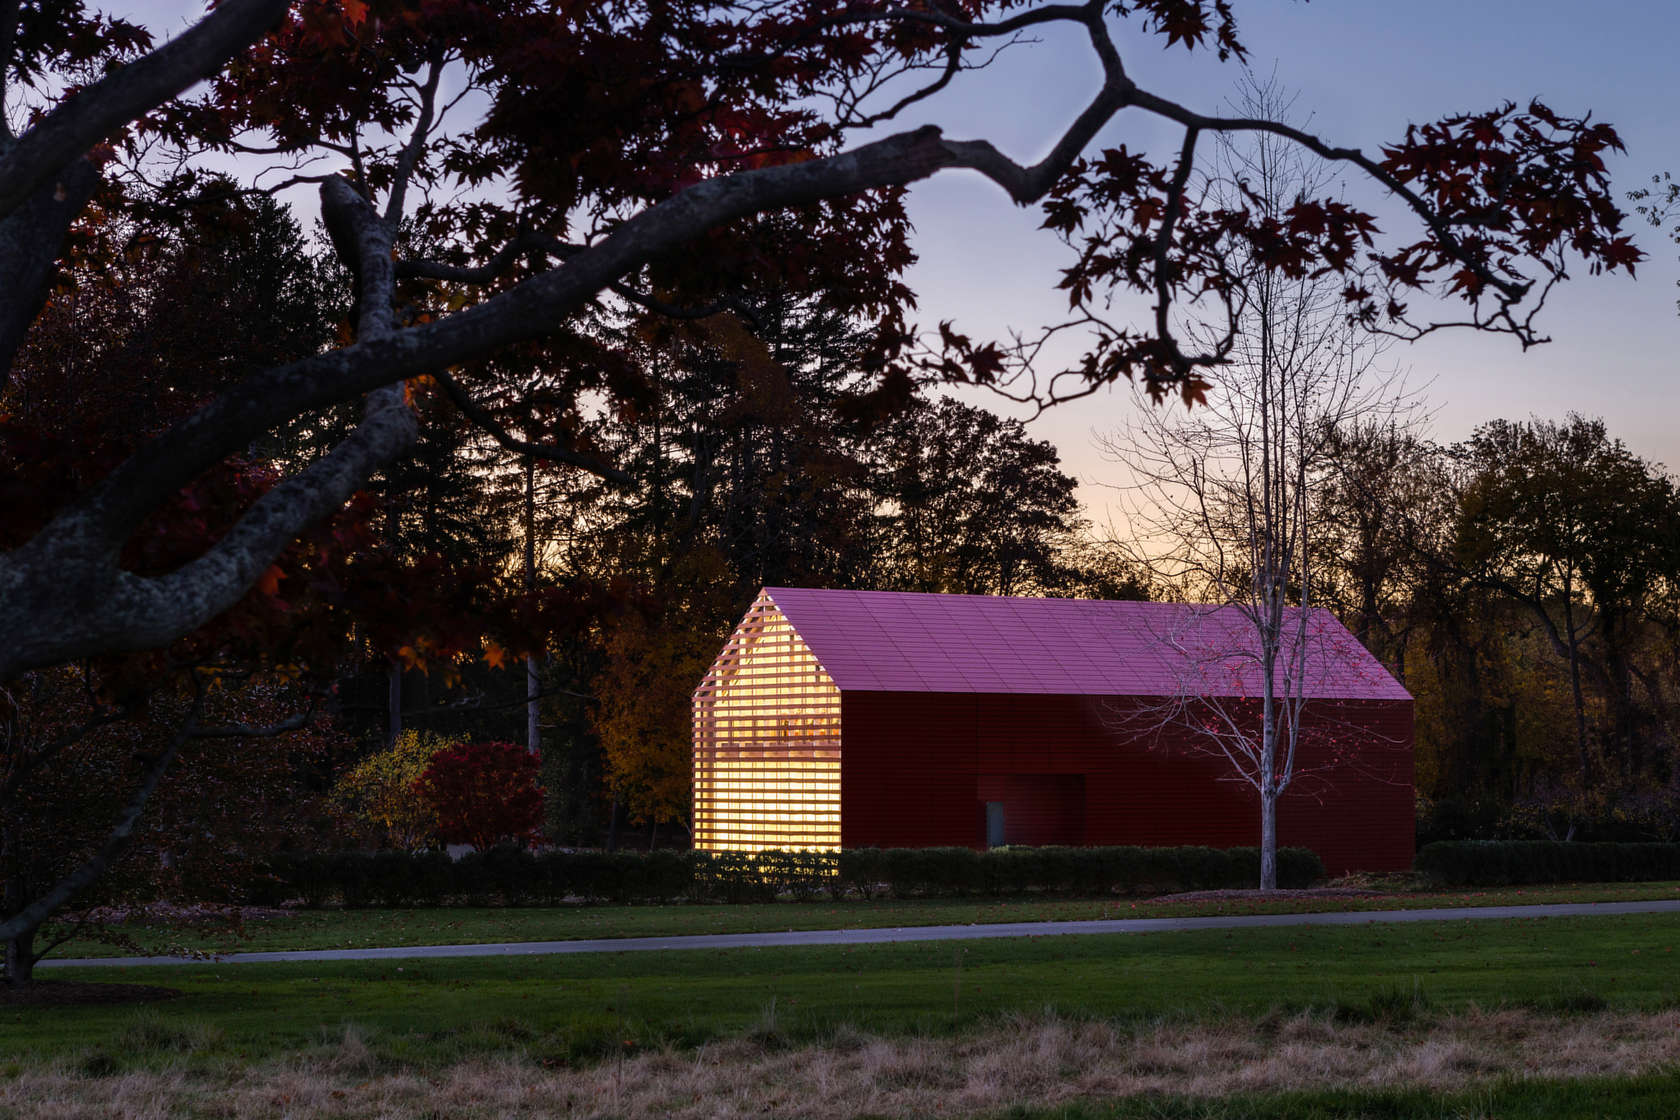 Overall dusk view of Red Barn designed by Roger Ferris + Partners